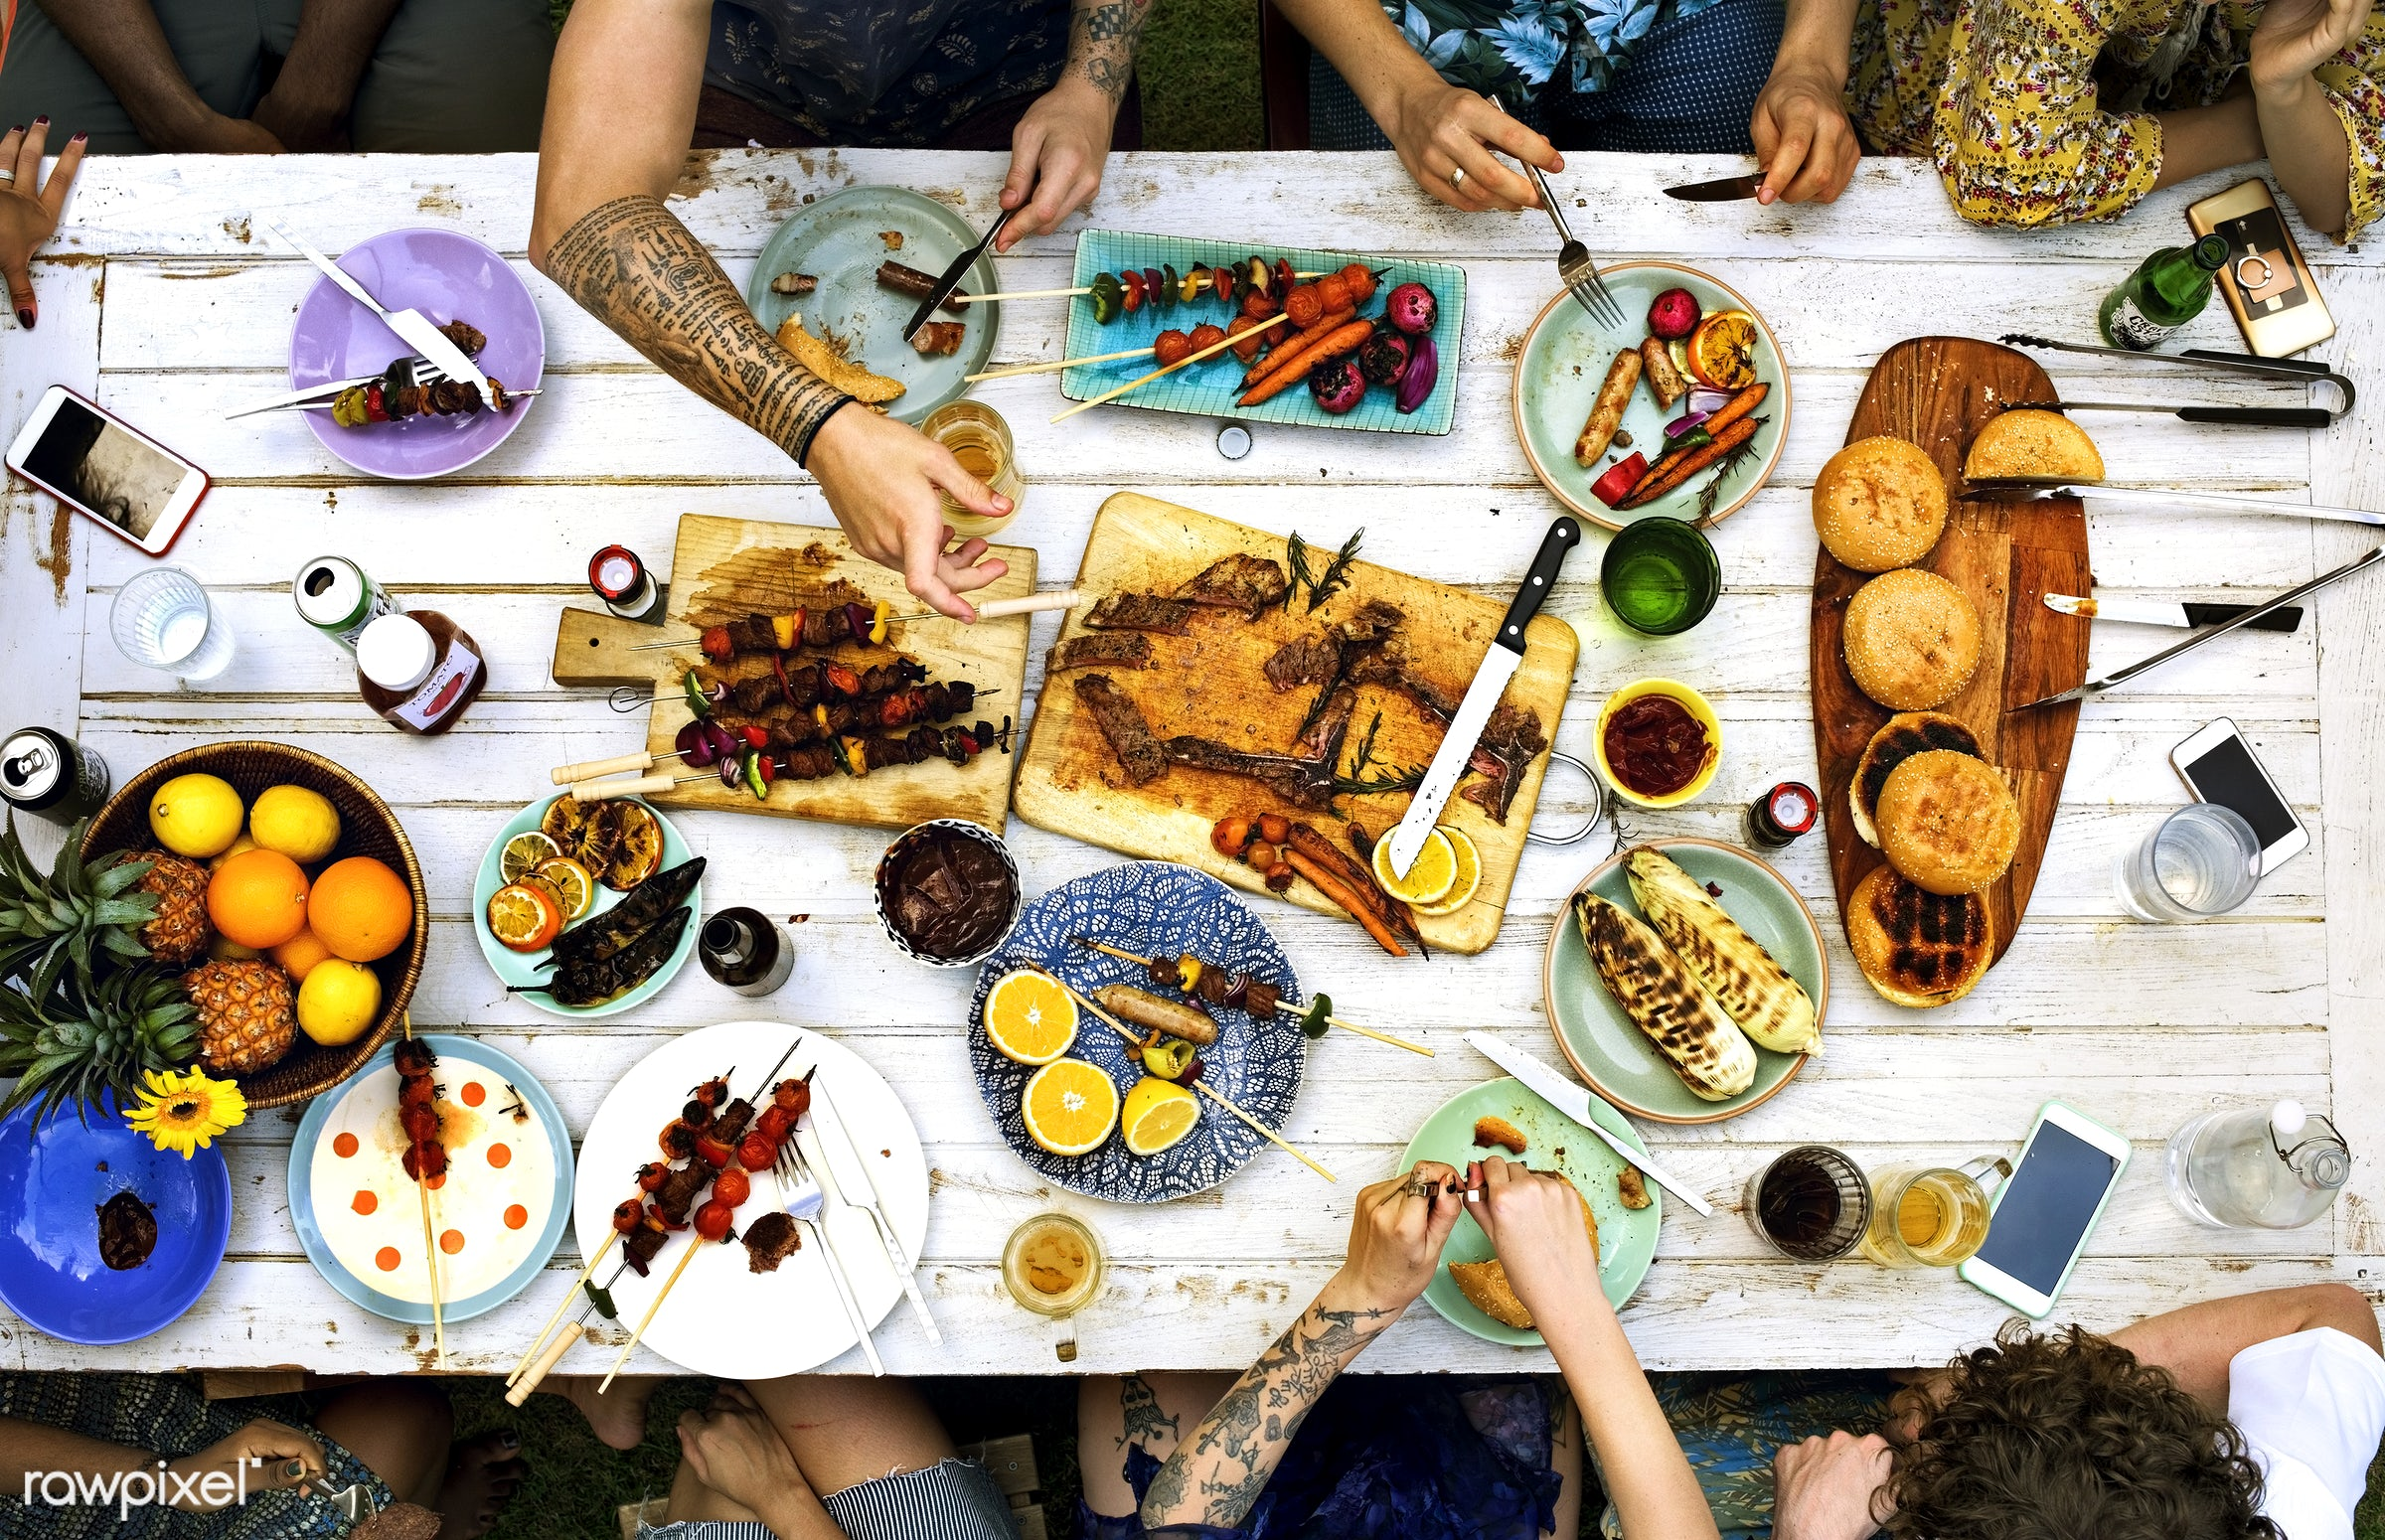 barbeque, activities, barbecue, bbq, charcoal, cheerful, cook, cooking, cookout, food, friendship, grill, grilled, grilling...